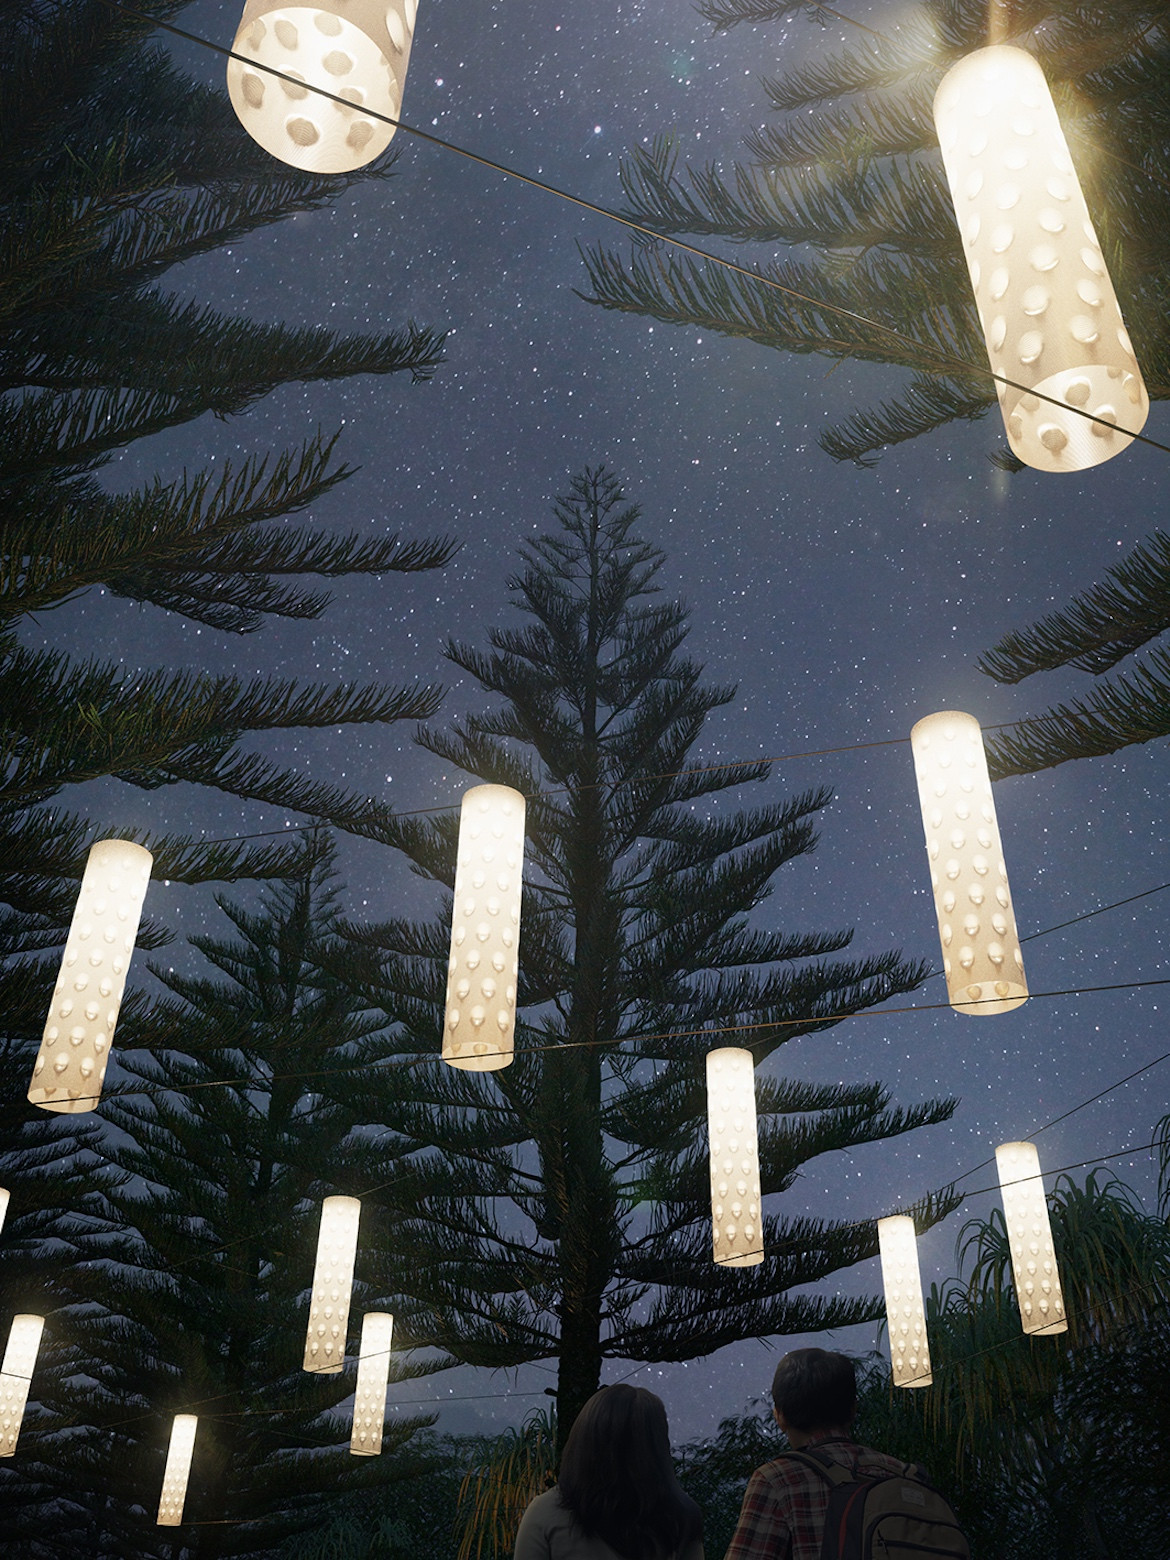 15 illuminated sculptures, inspired by Country, hang among Norfolk Pines.